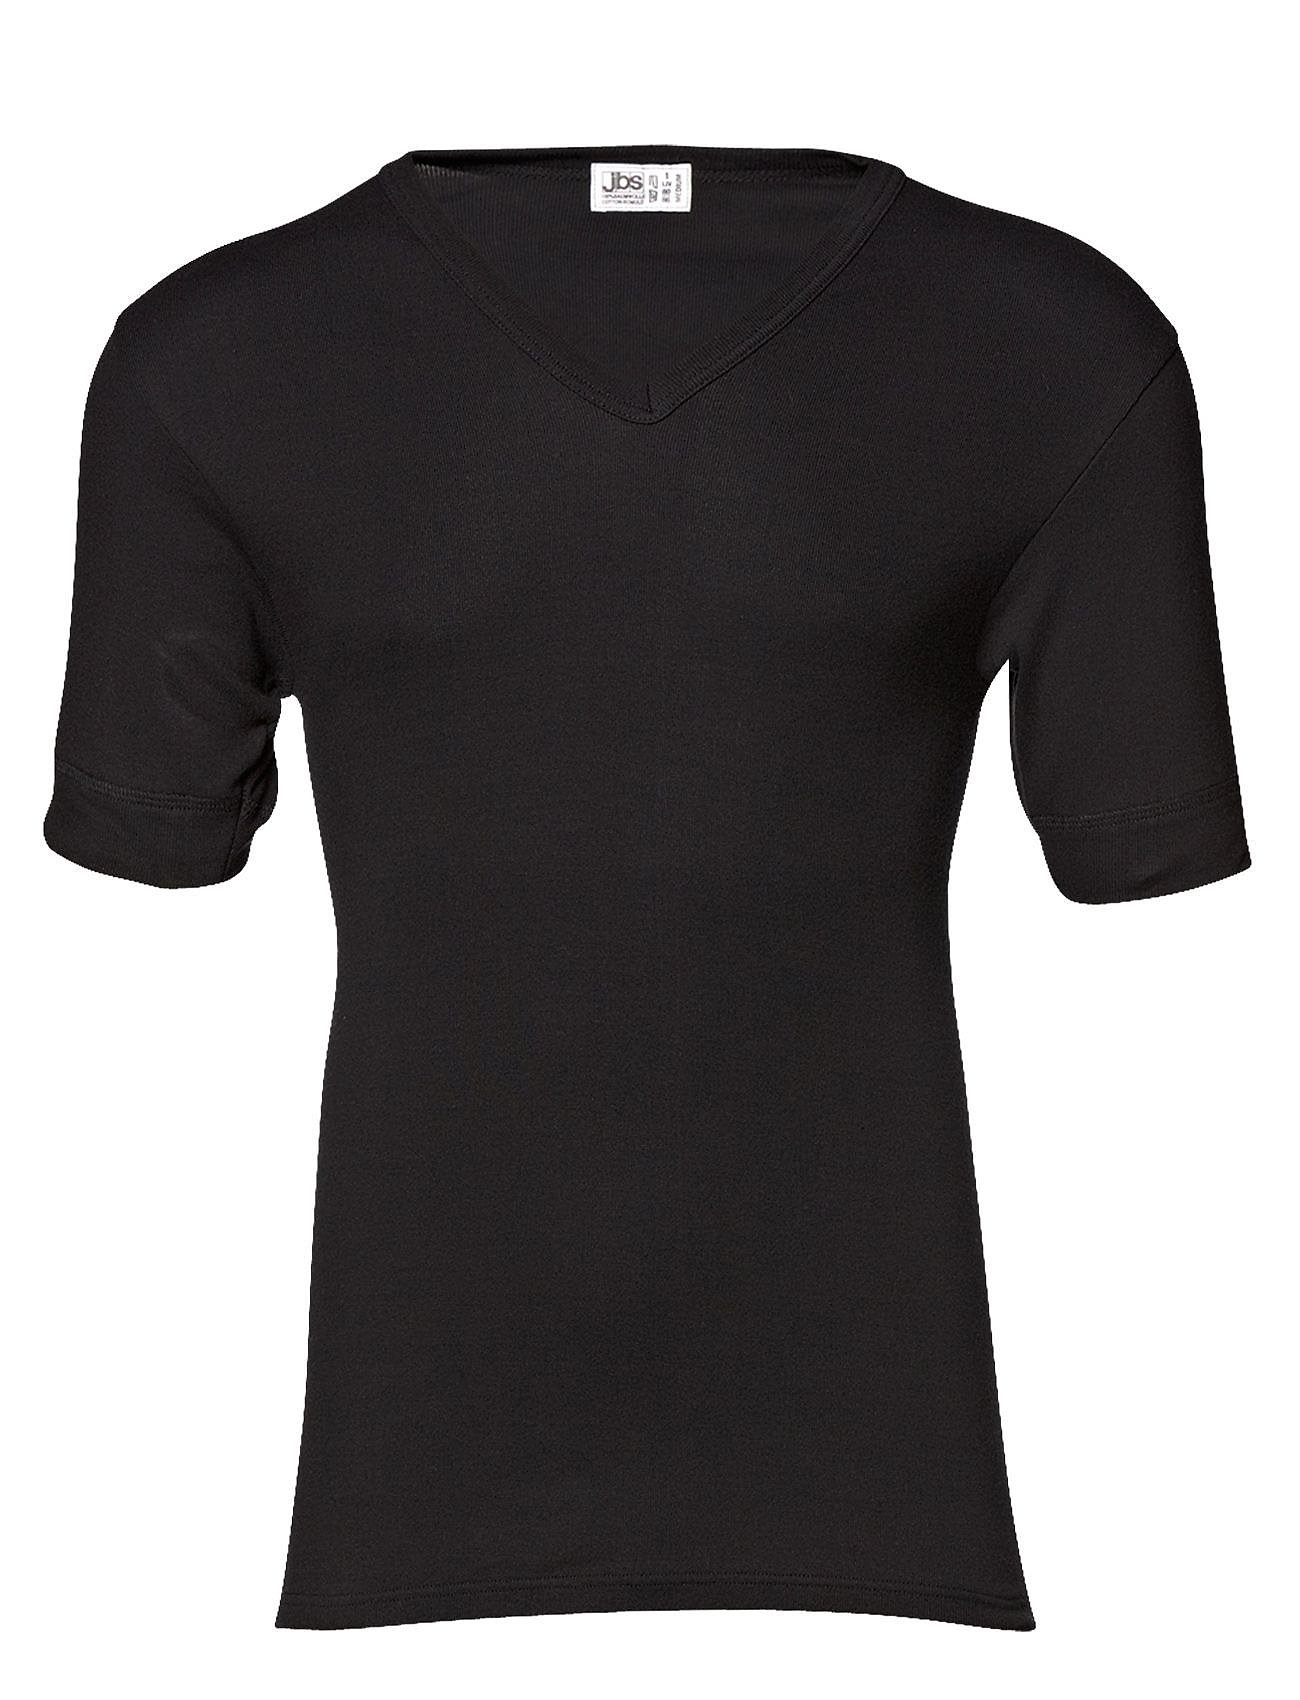 JBS Original v-neck tee - BLACK